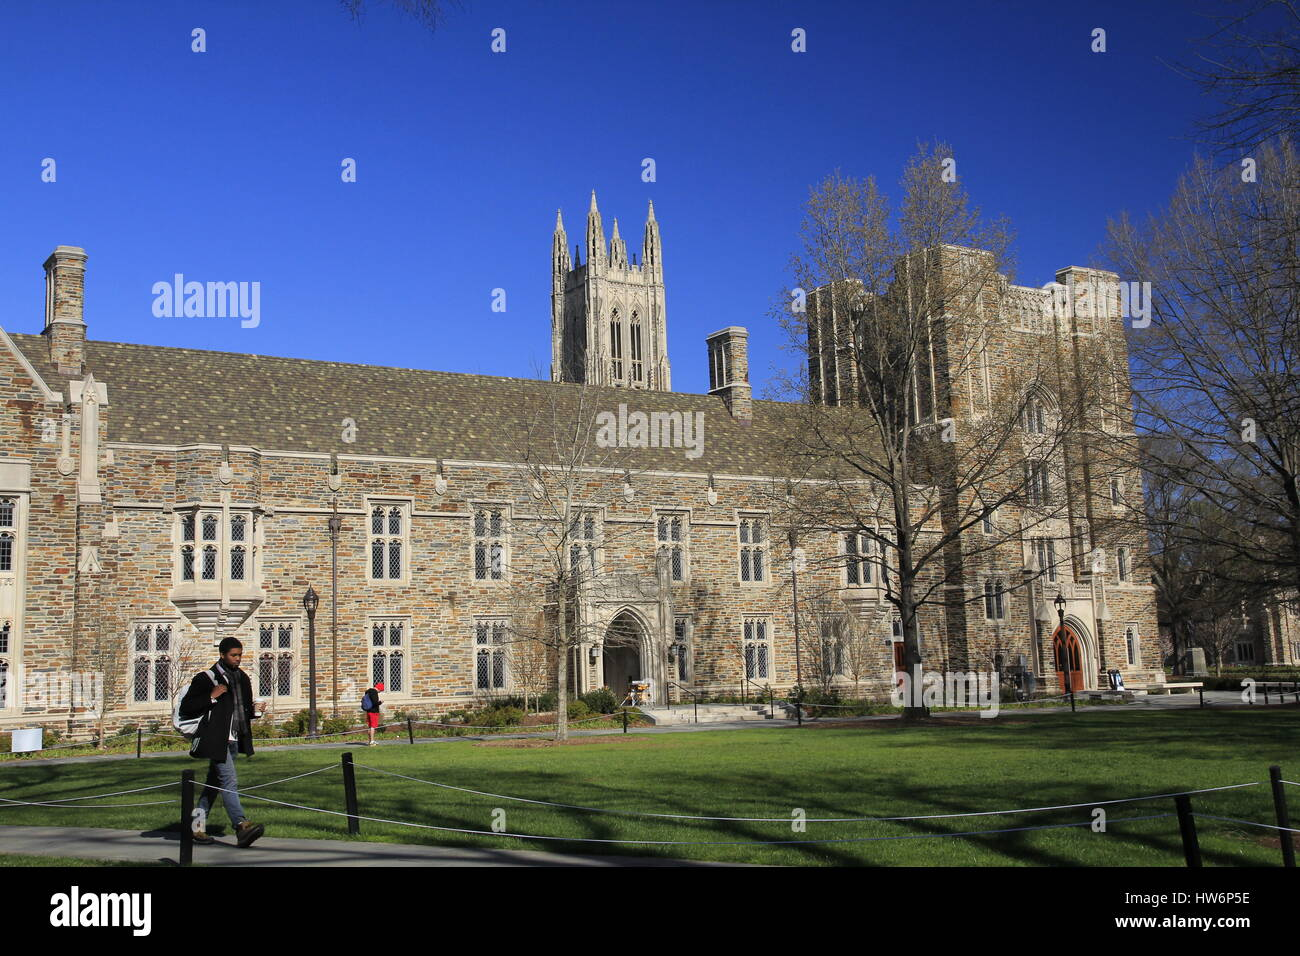 Students walking across campus lawn Duke University Durham North Carolina - Stock Image